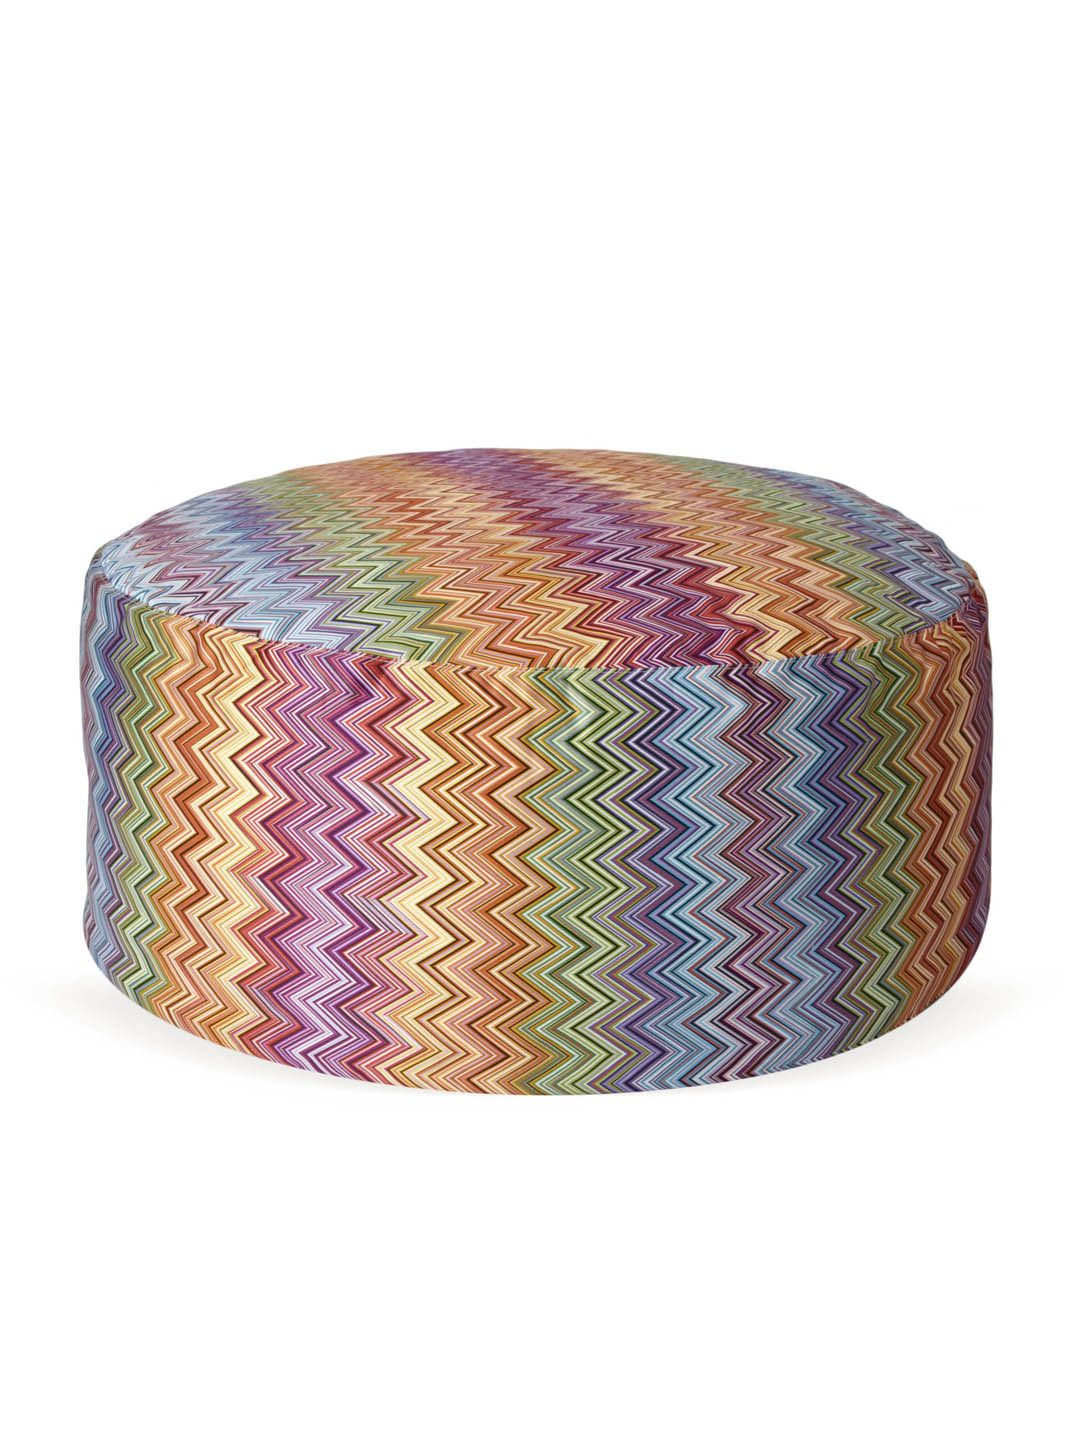 missoni ottoman on gilt home. missoni ottoman on gilt home  home in the city  pinterest